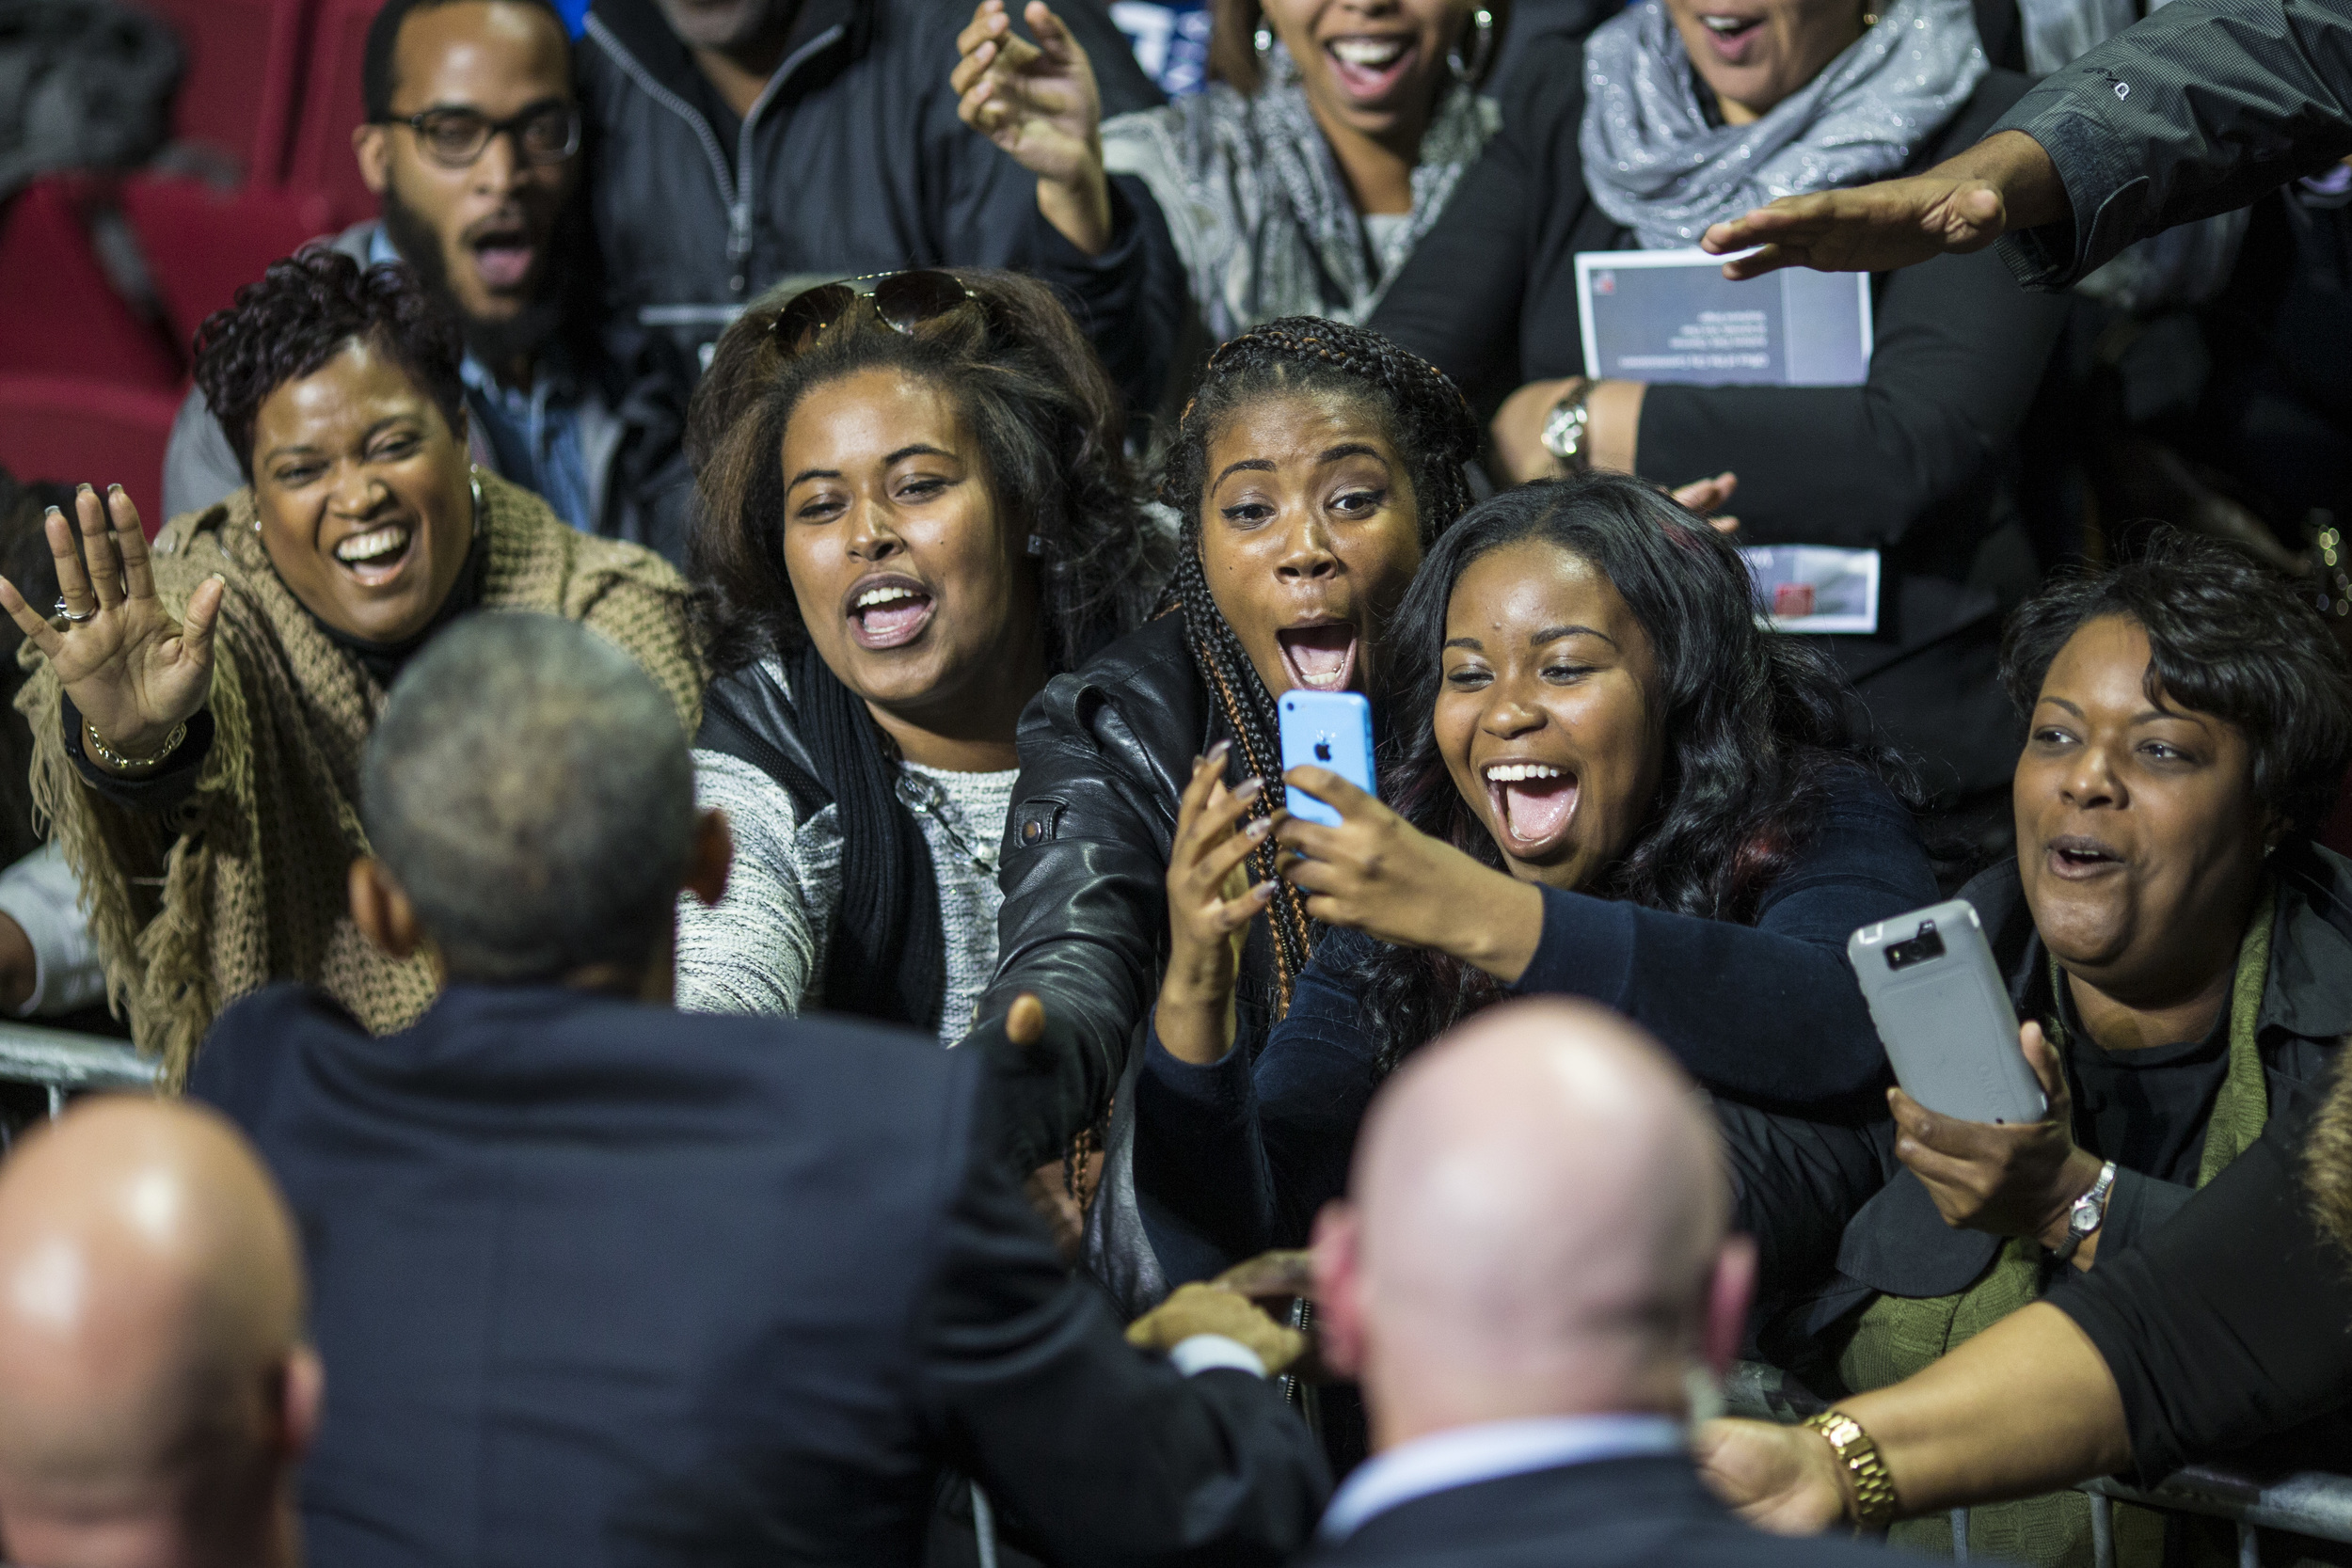 Crowds reach for and cheer for President Obama after he delivered remarks at a campaign rally for Tom Wolf at The Liacouras Center, Temple University in Philadelphia, PA on Sunday November 02, 2014.